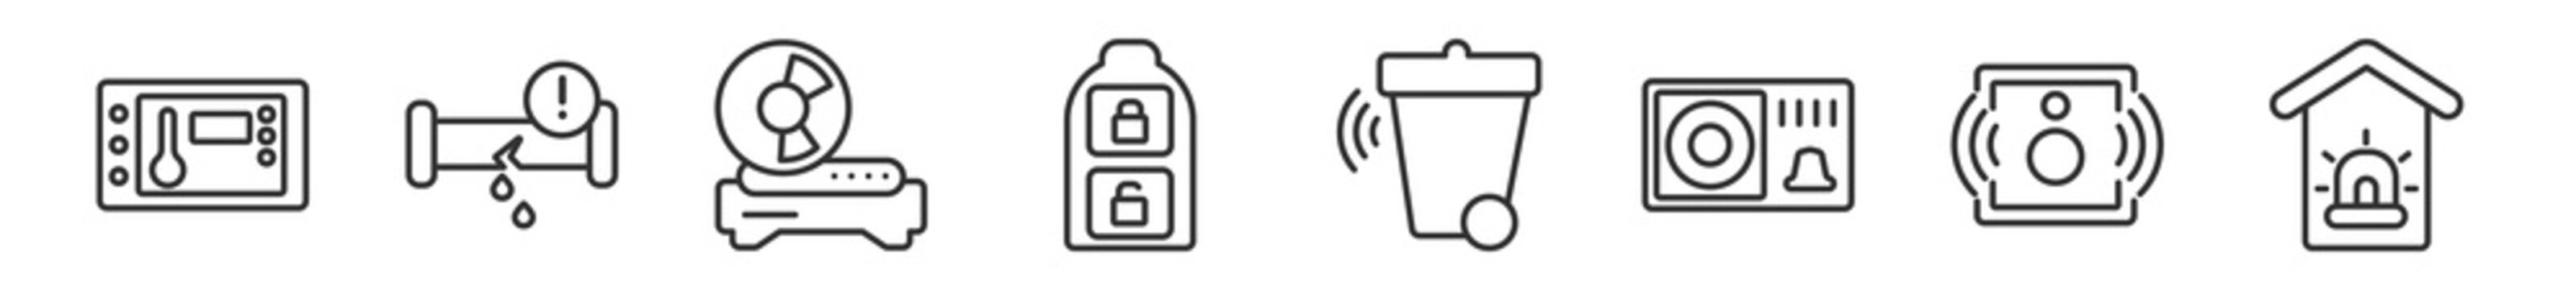 outline set of smart home line icons. linear vector icons such as thermostat, leak, cd player, smart key, smart trash, alarm system. vector illustration.